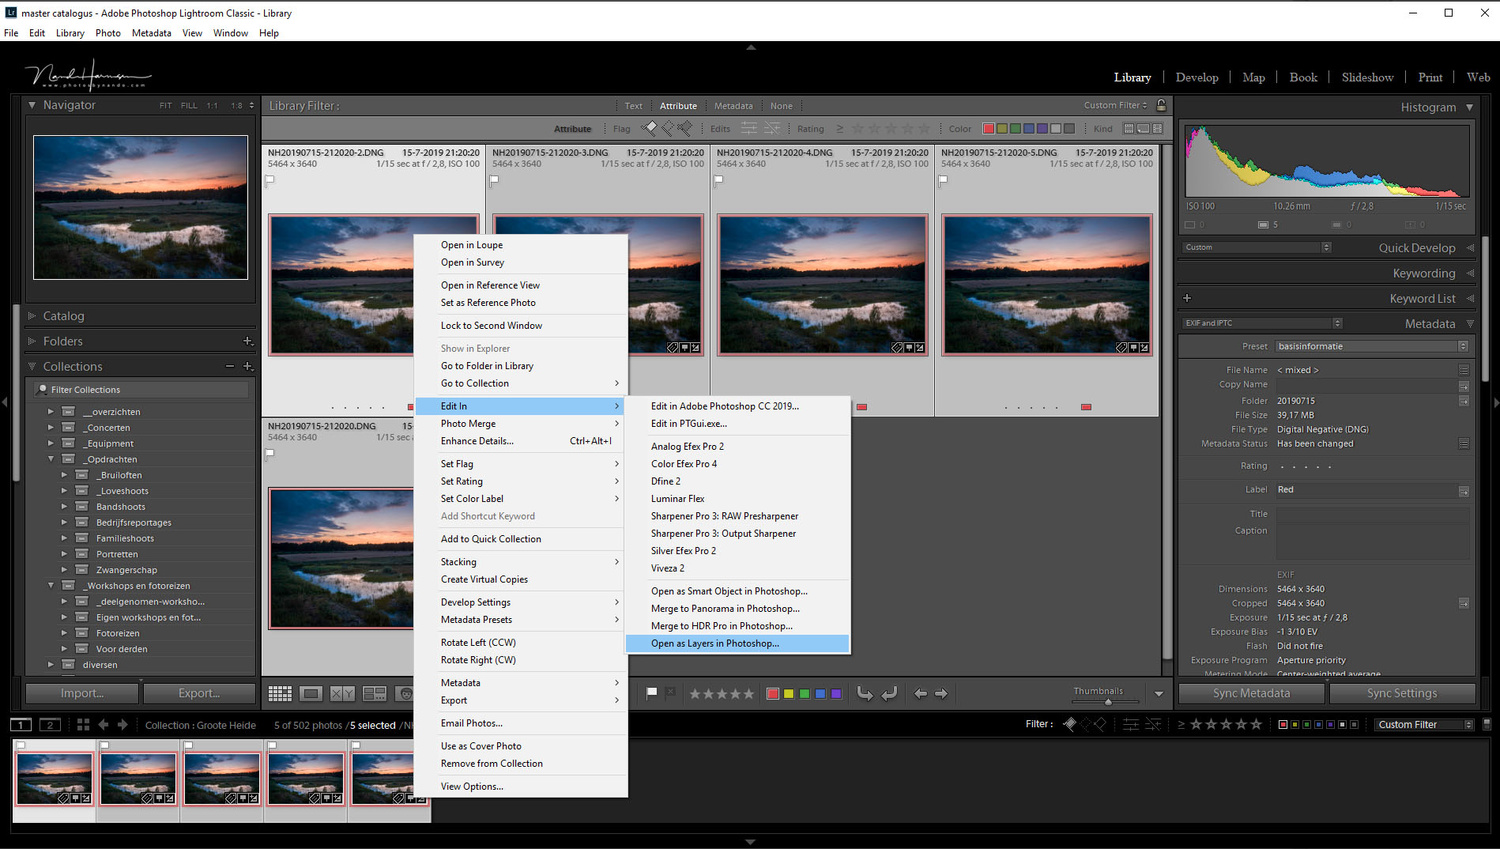 Transfer the selected images to Photoshop. You can choose to open all selected images into layers, which is very convenient.